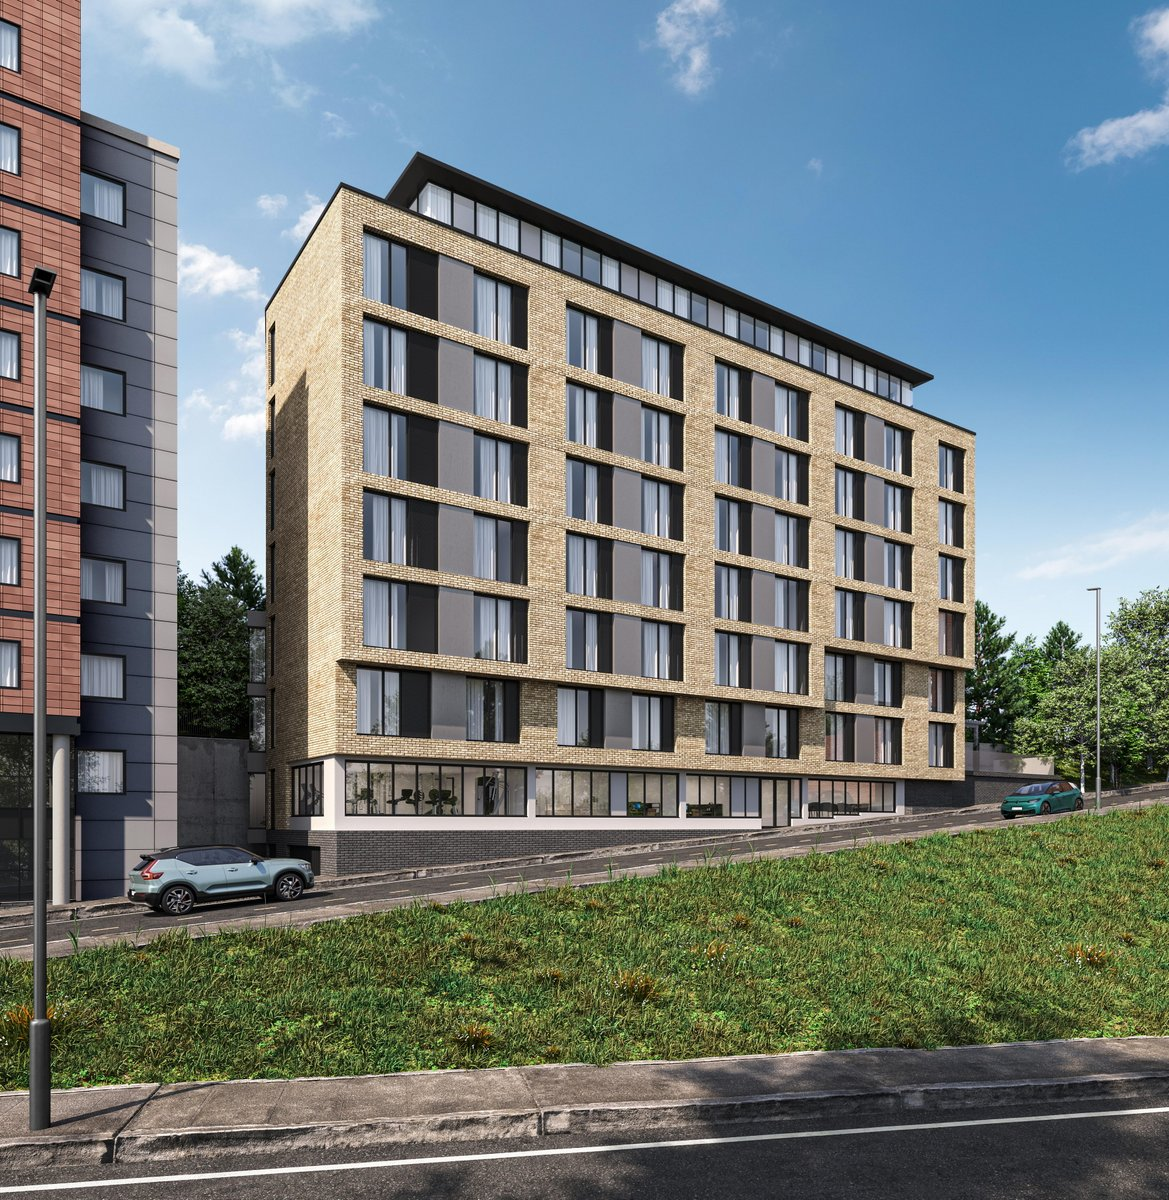 We're beyond pleased with this news, our Torsion Students site, Trapezium is set to open in September 2022.#construction #development #DevelopConstructOperate